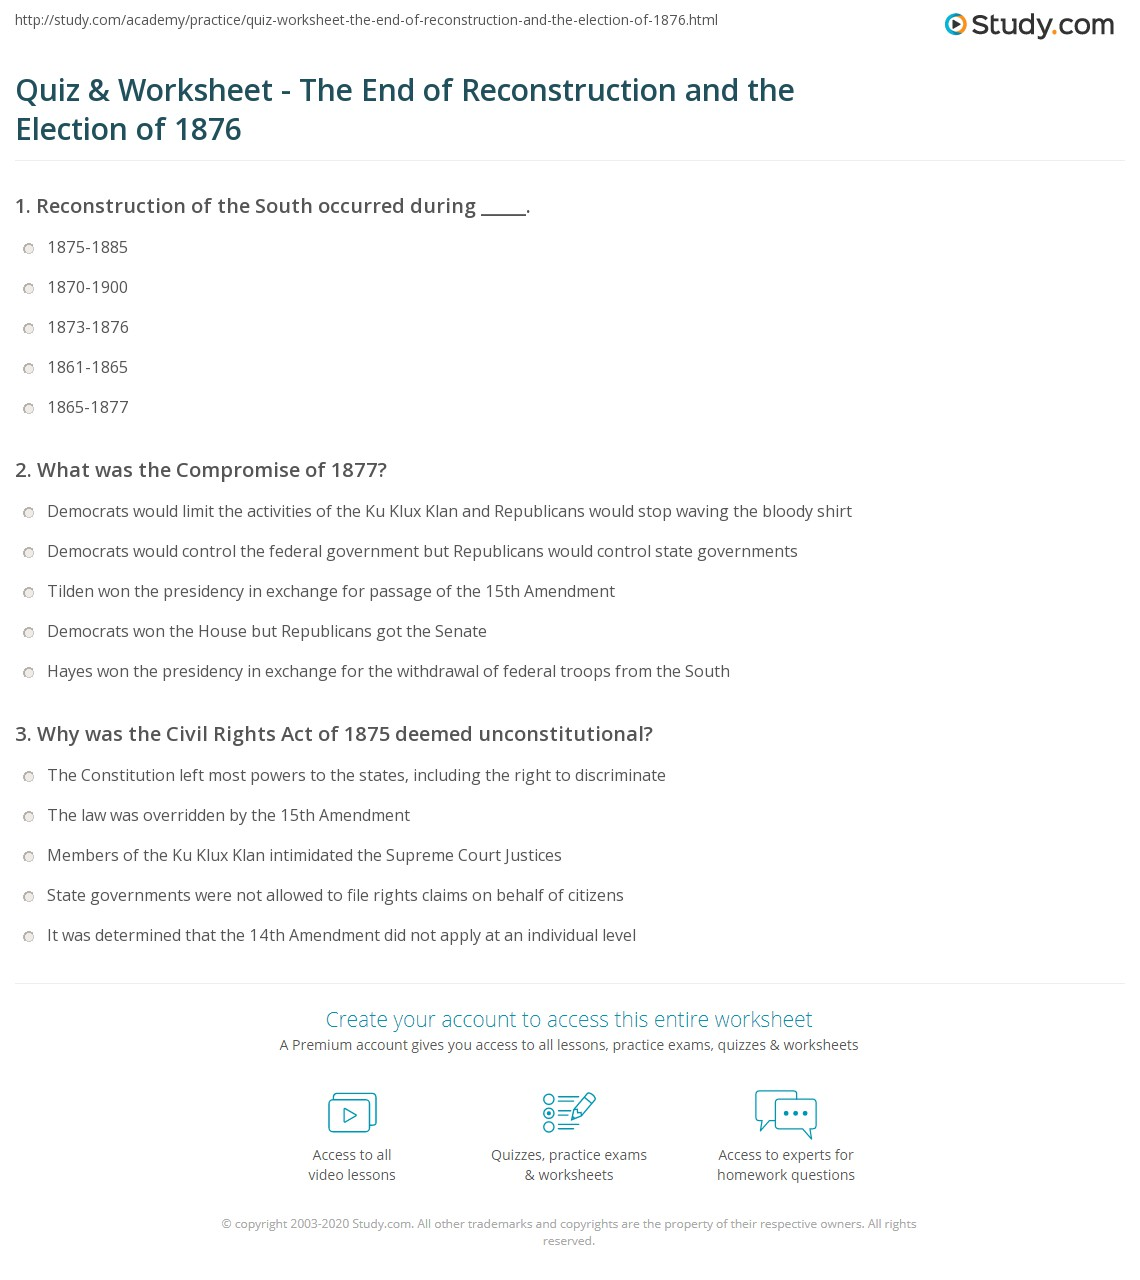 Quiz & Worksheet - The End of Reconstruction and the Election of ...